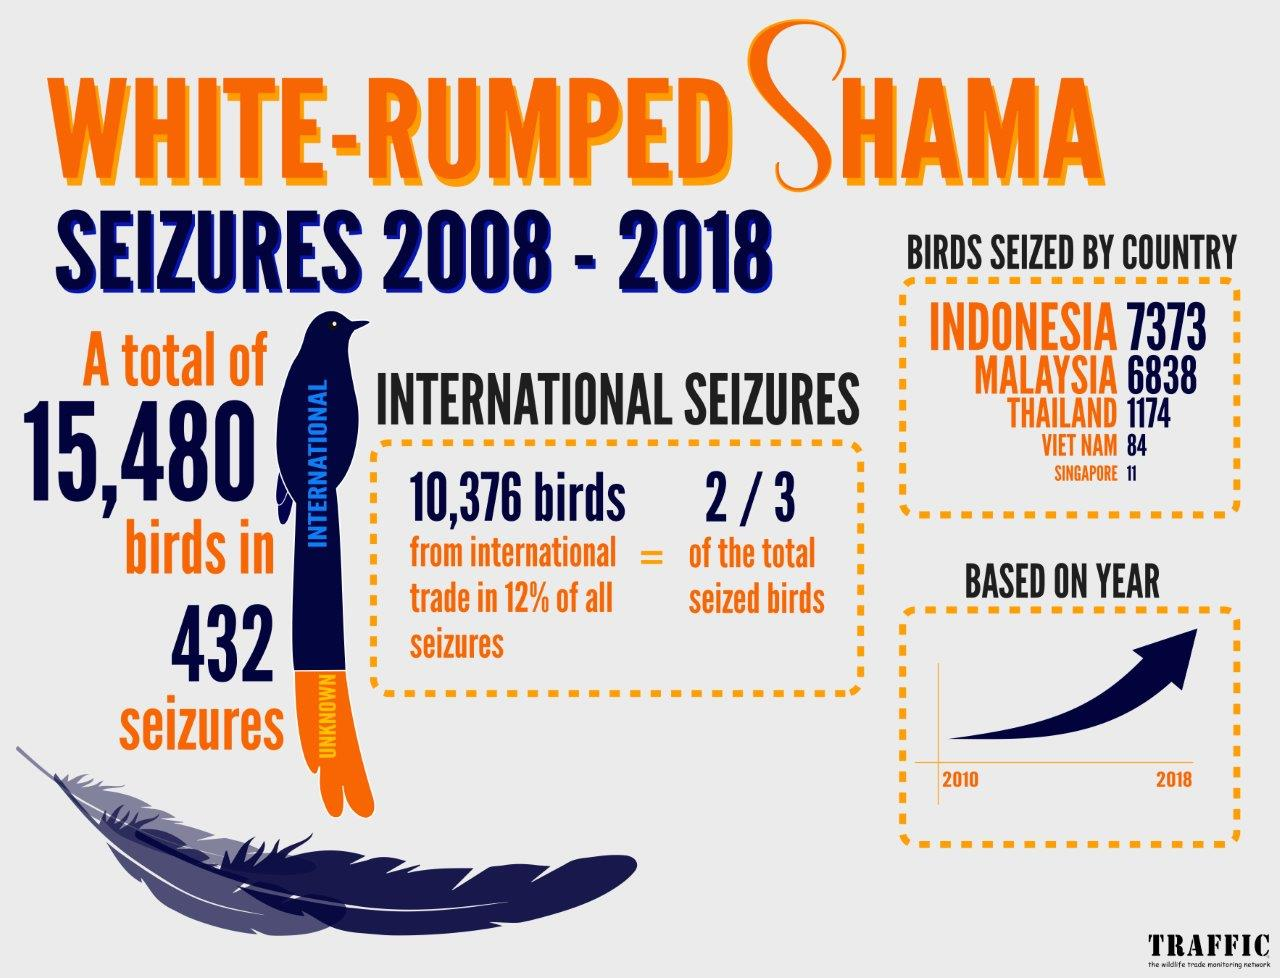 These statistics show seizures of White-rumped Shama song birds from illegal trade from 2008-2018.  In total authorities seized 15,480 birds in 432 cases.  10,376 of the birds (two thirds of the total) were being traded internationally. 7373 were from Indonesia, 6838 from Malaysia, 1174 from Thailand, 84 from Vietnam and 11 from Singapore. These figures represent considerable increase in trade over time.  TRAFFIC image and copyright.